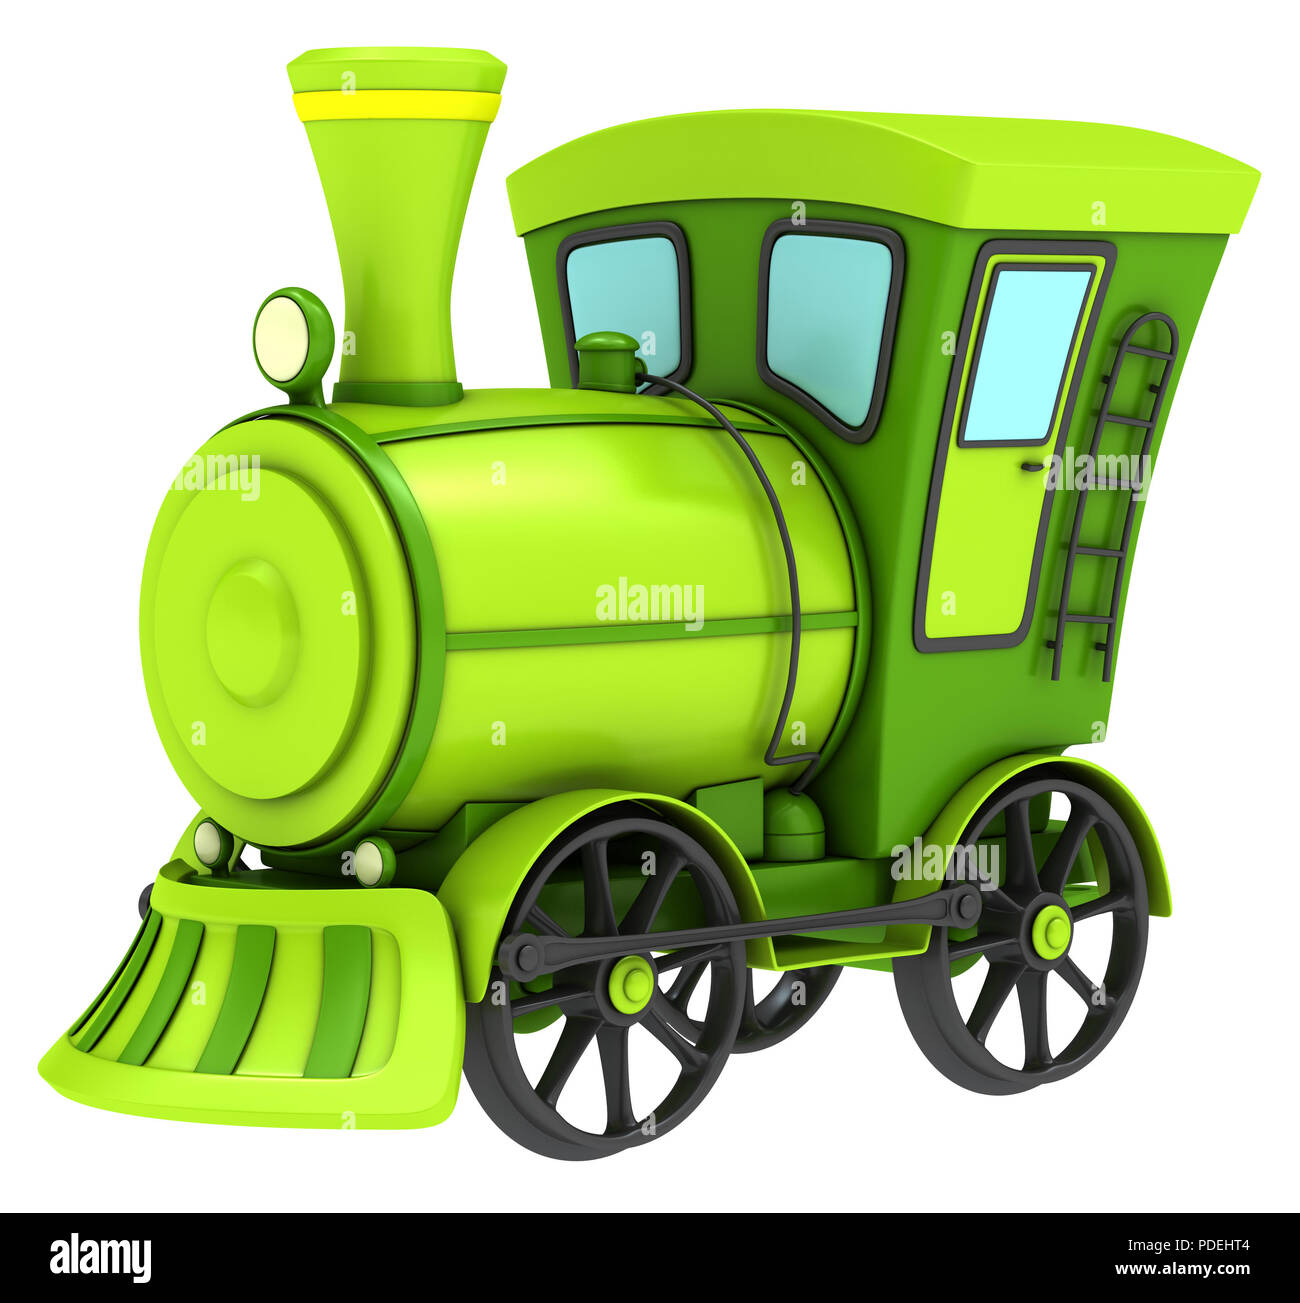 Green toy train isolated on white background. Stock Photo